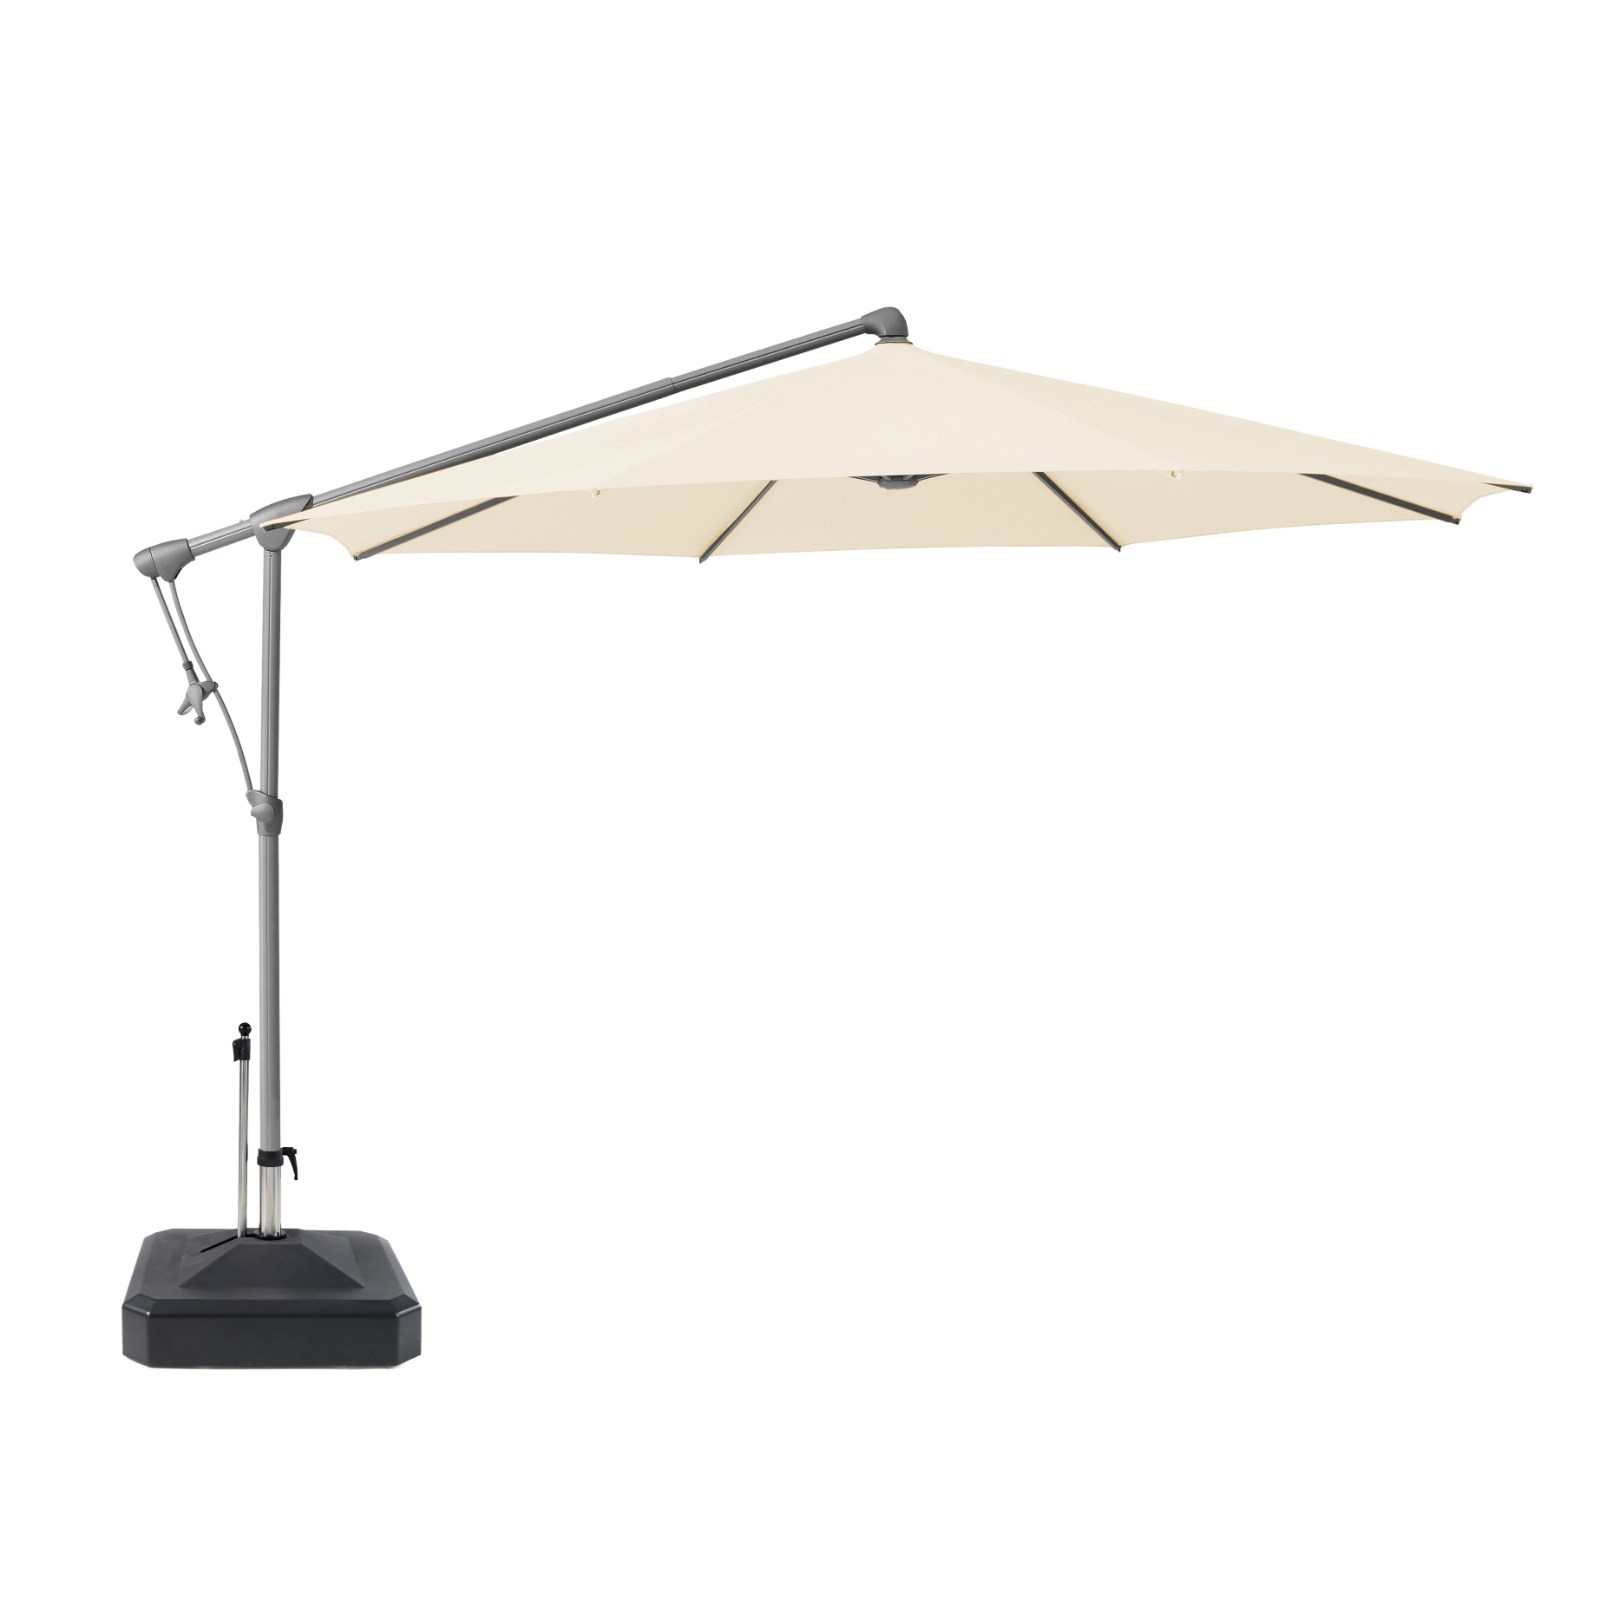 Glatz Sunwing 2.65m Cantilever Parasol with Lira 100kg moveable base